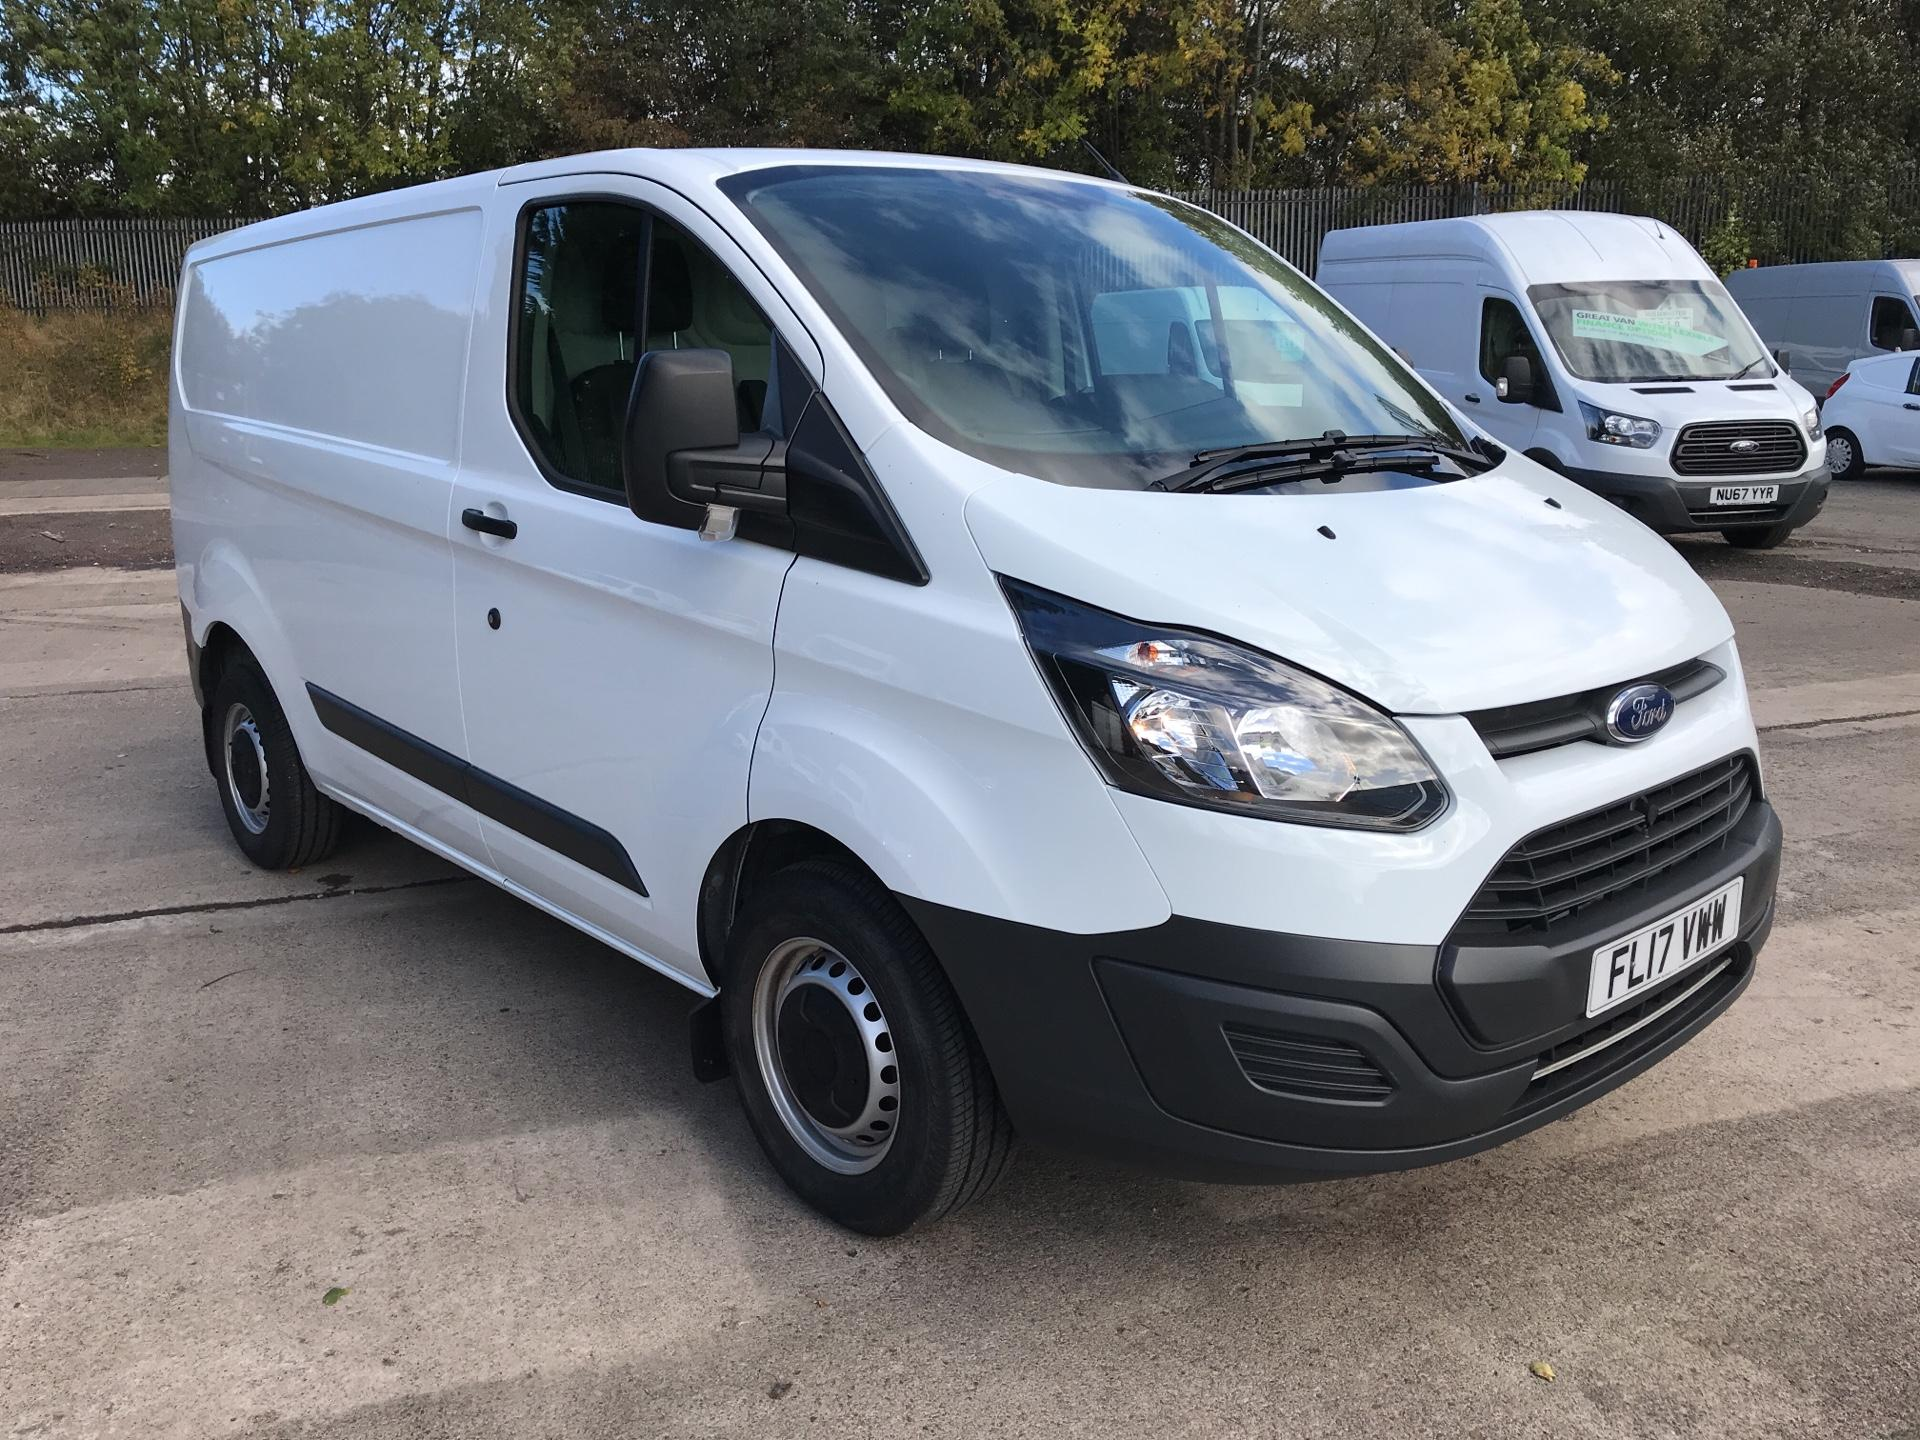 2017 Ford Transit Custom 290 L1 DIESEL FWD 2.0 TDCI 105PS LOW ROOF VAN EURO 6 (FL17VWW)